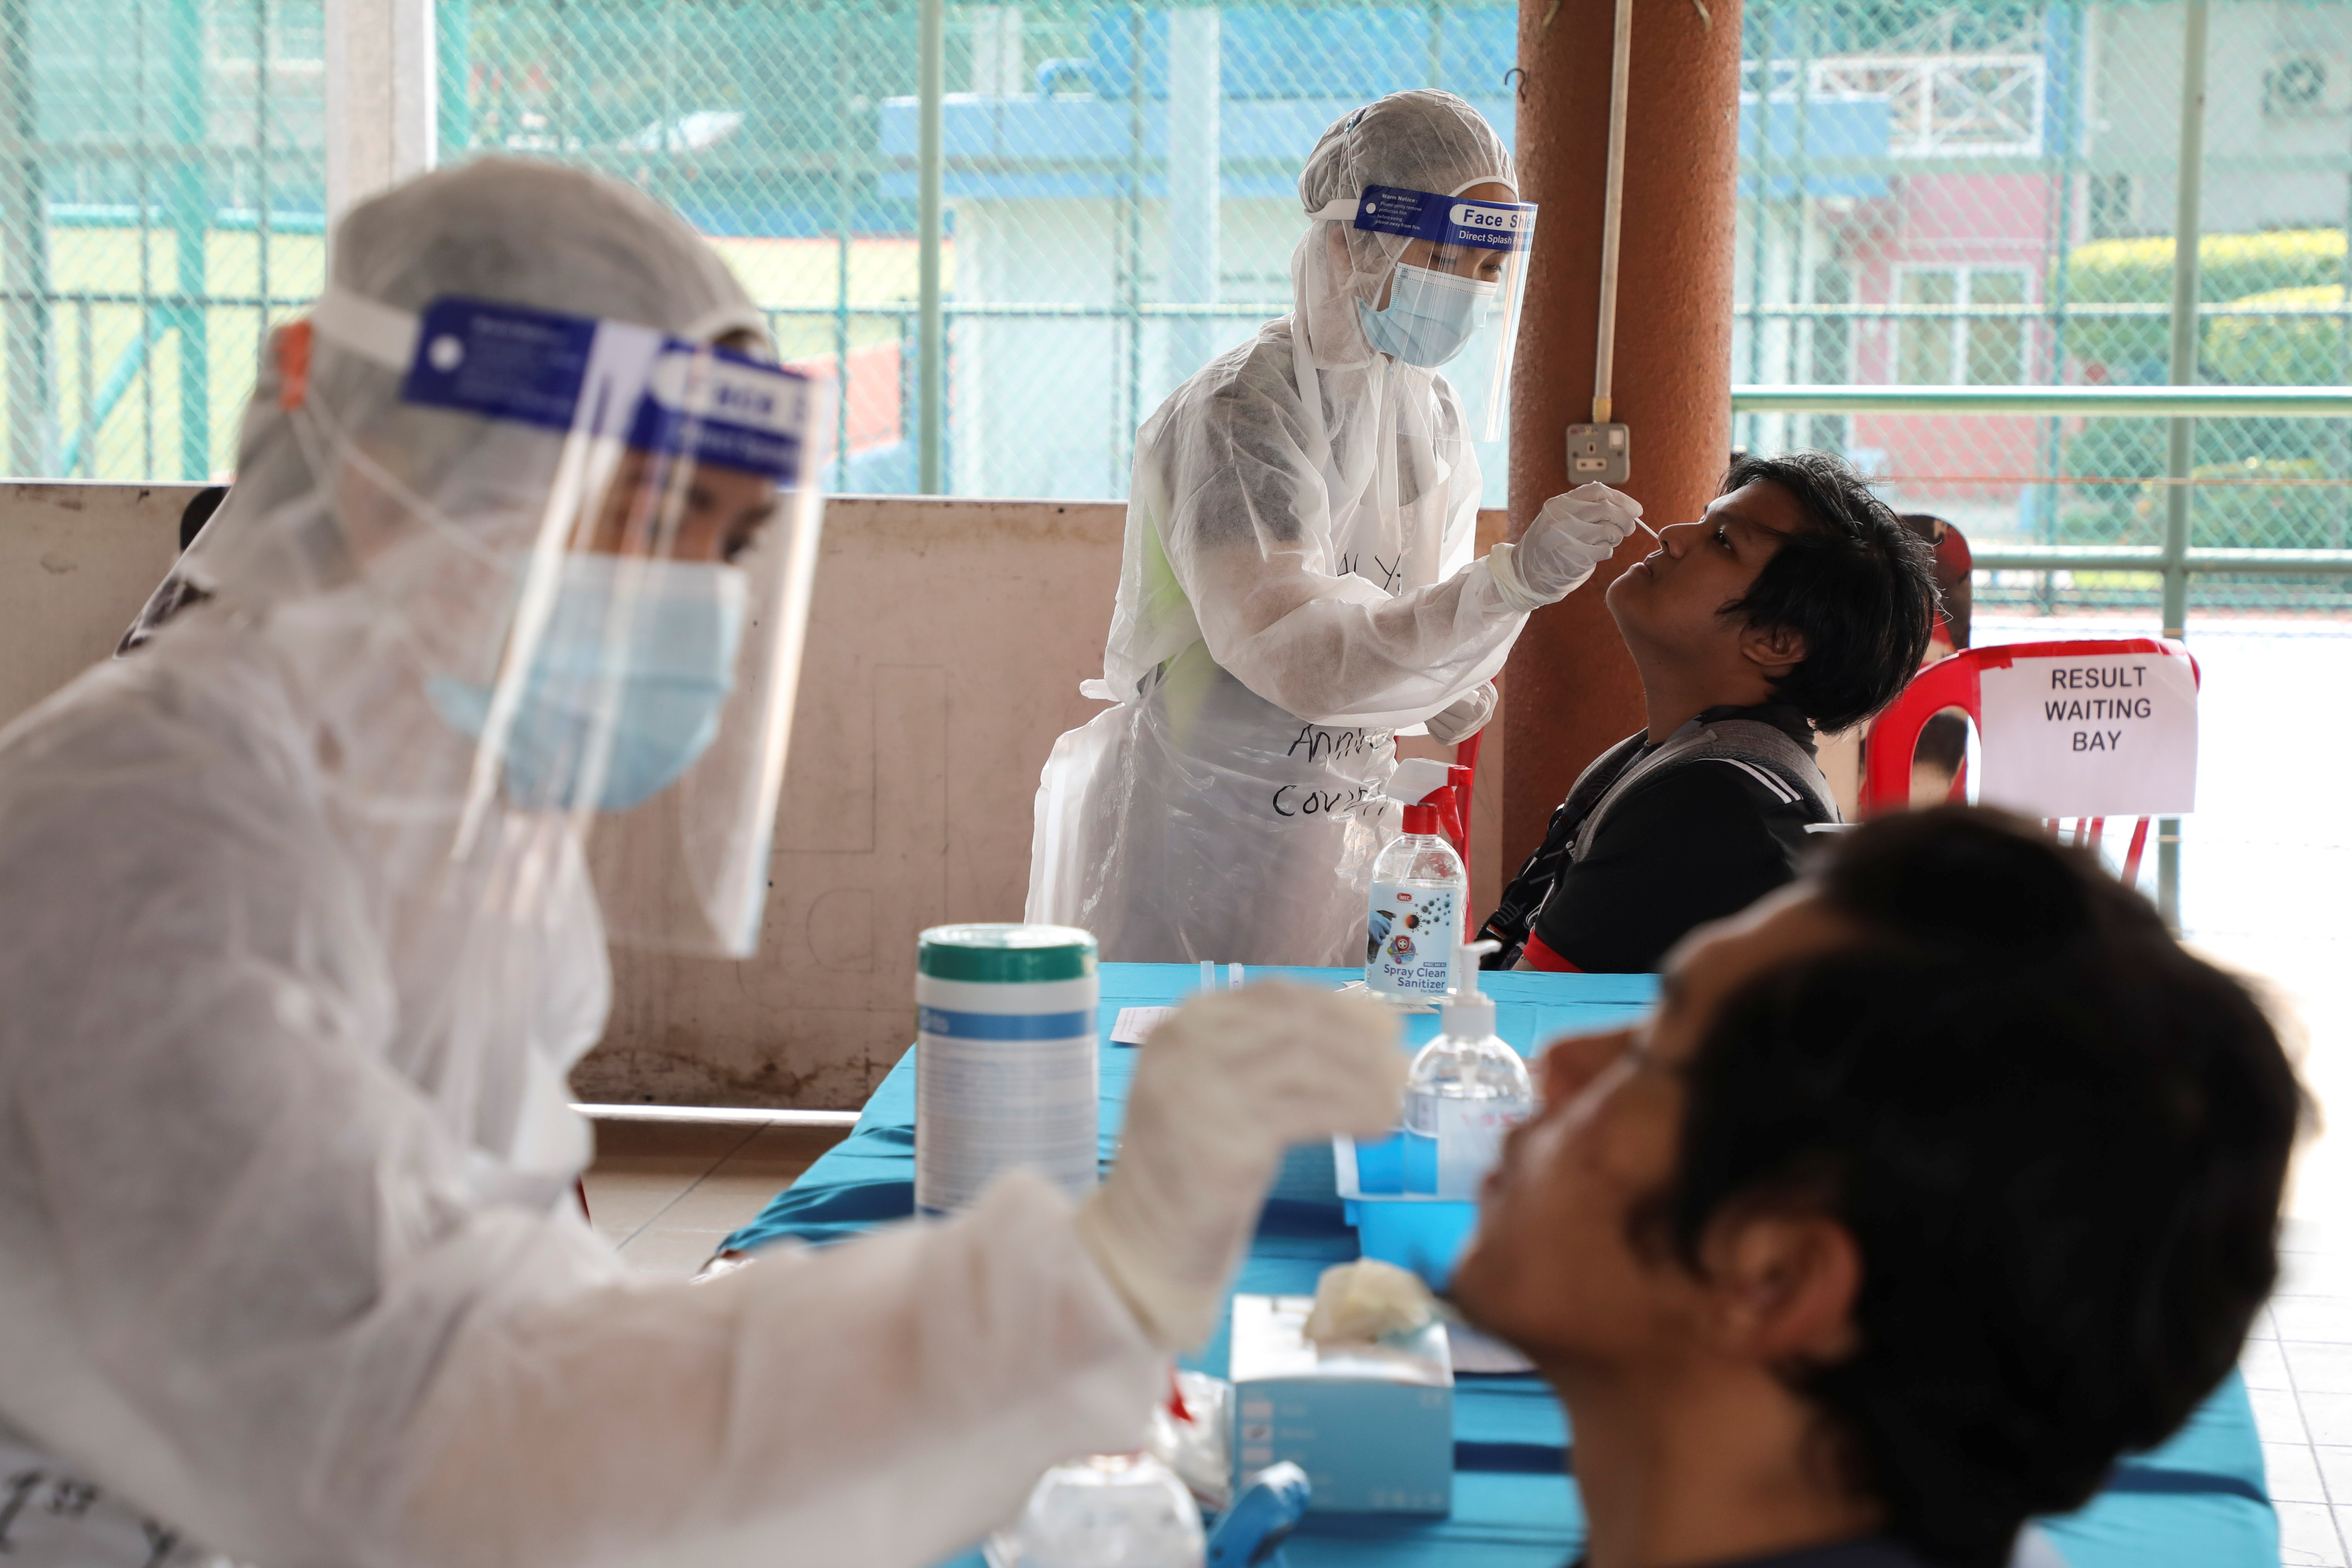 Medical workers collect swab samples from people at a coronavirus disease (COVID-19) testing centre in Petaling Jaya, Malaysia January 25, 2021. REUTERS/Lim Huey Teng